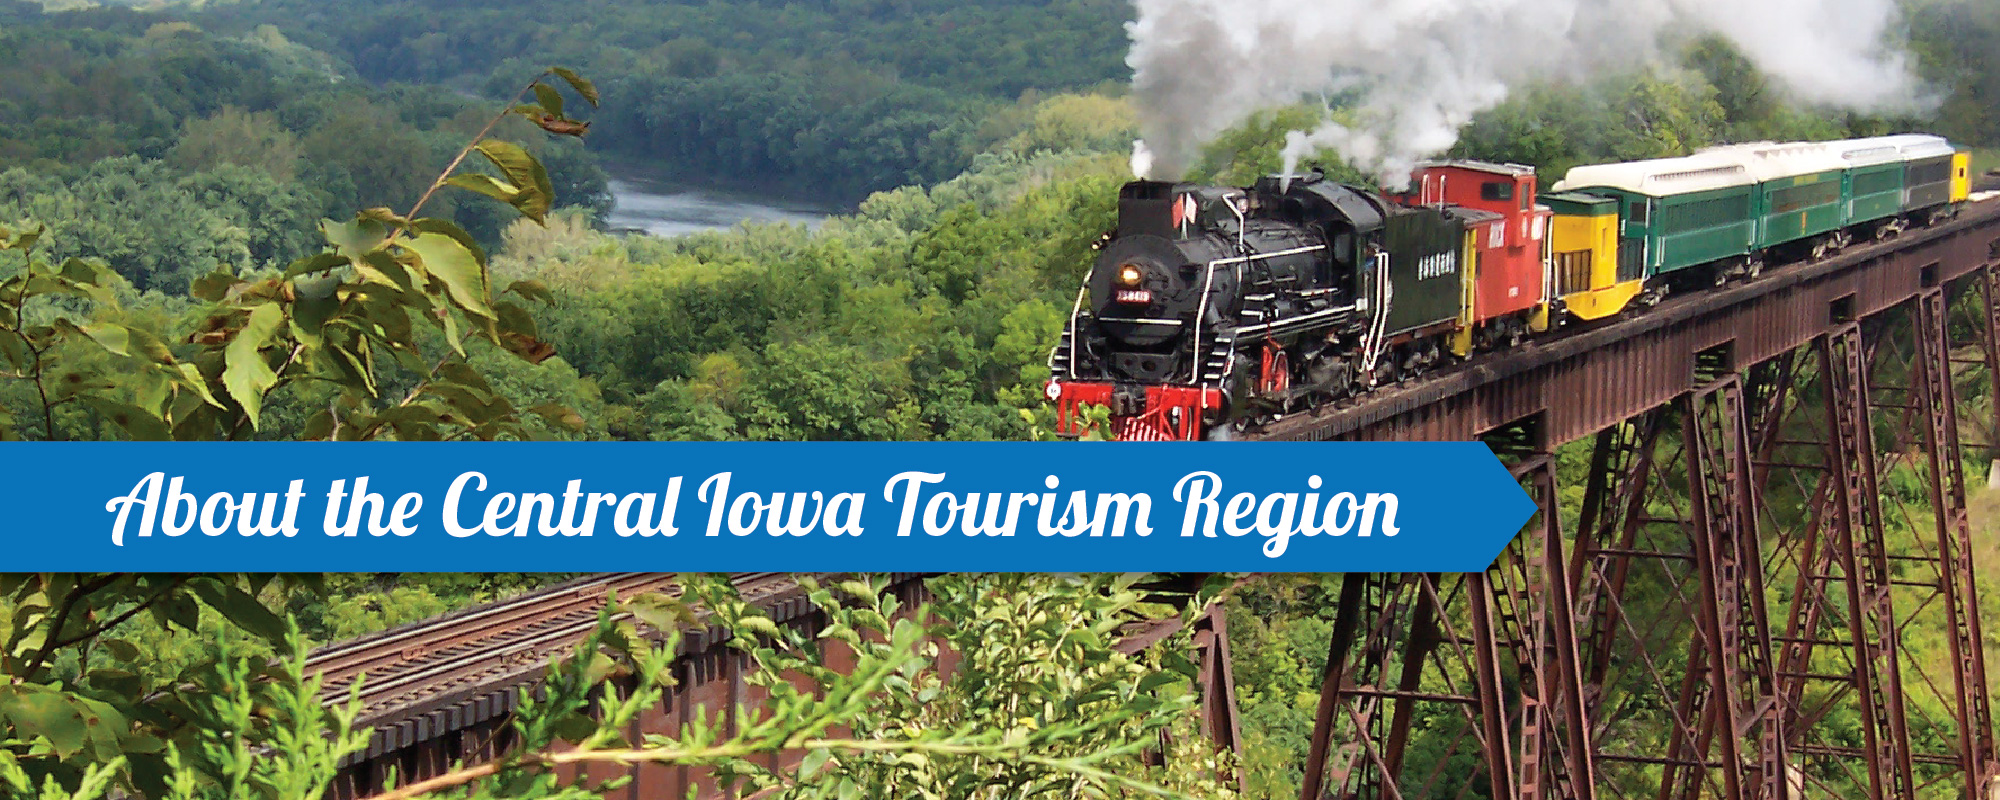 Central Iowa Tourism Region | About the Central Iowa Tourism Region